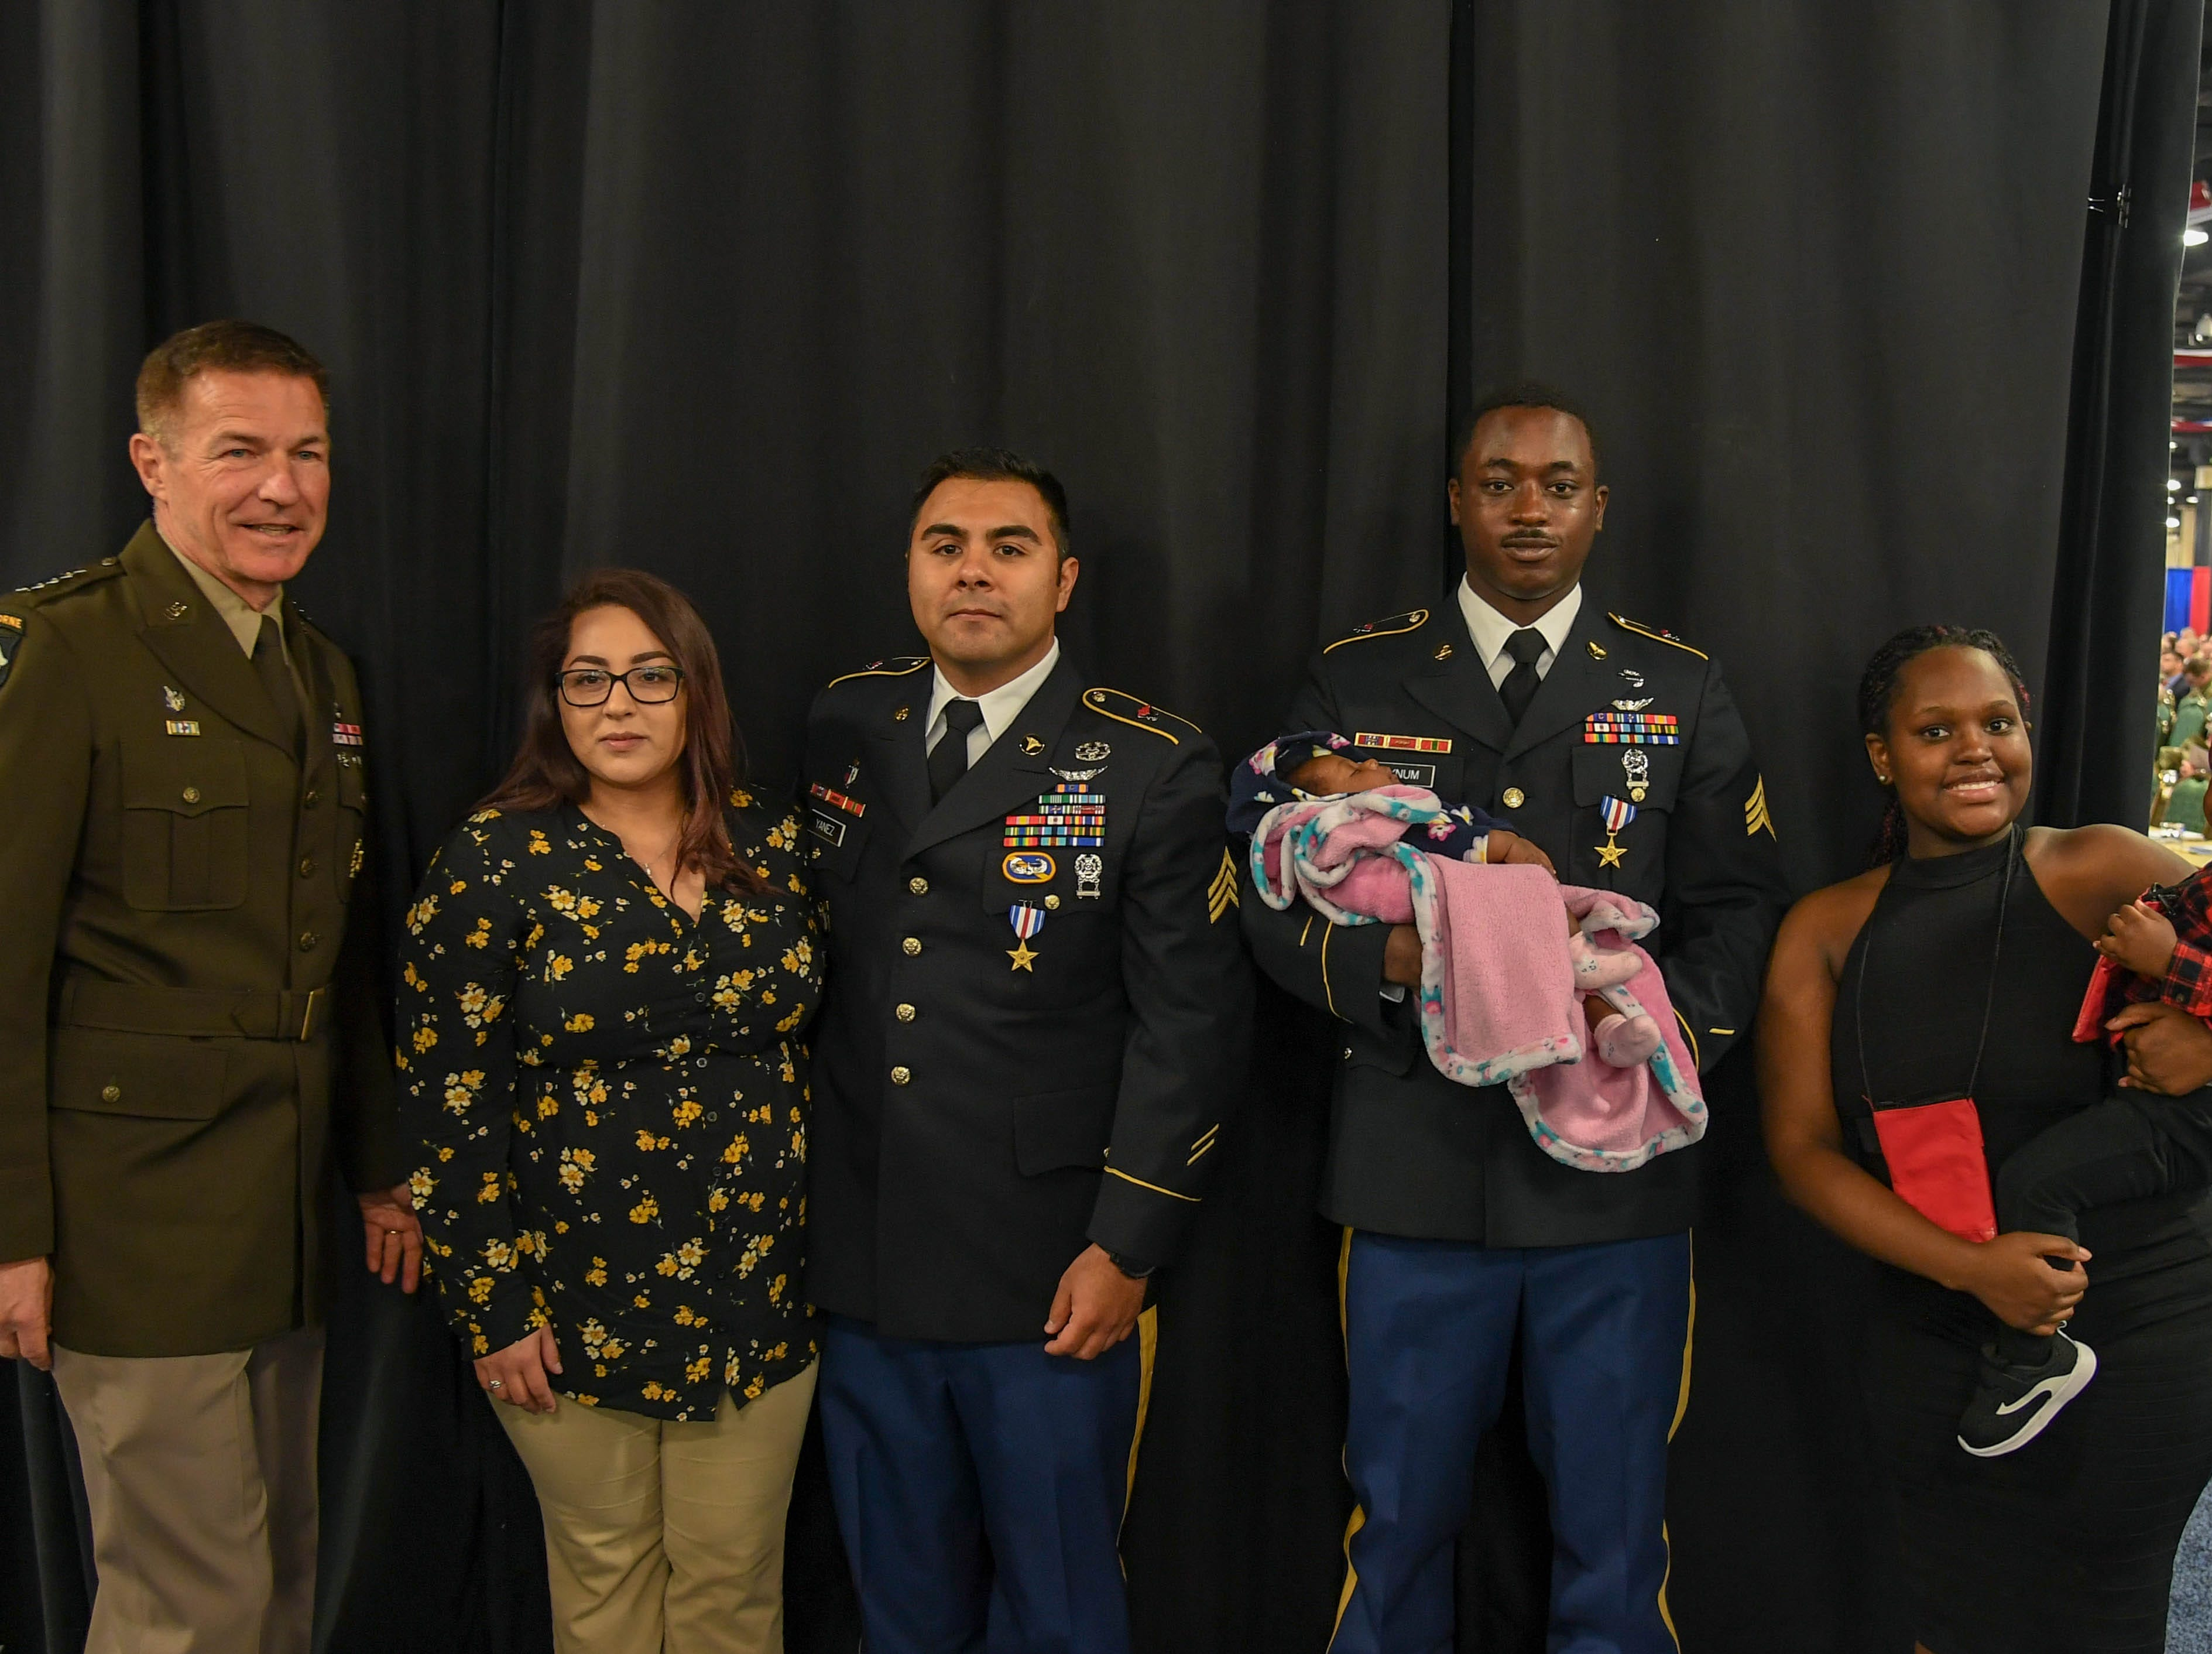 Sgt. Emmanuel Bynum and Sgt. Armando Yanez, 101st Combat Aviation Brigade, stand with family members and General James McConville after receiving the Silver Star on April 16, 2019, for heroism in combat during a medevac mission last year in Afghanistan.